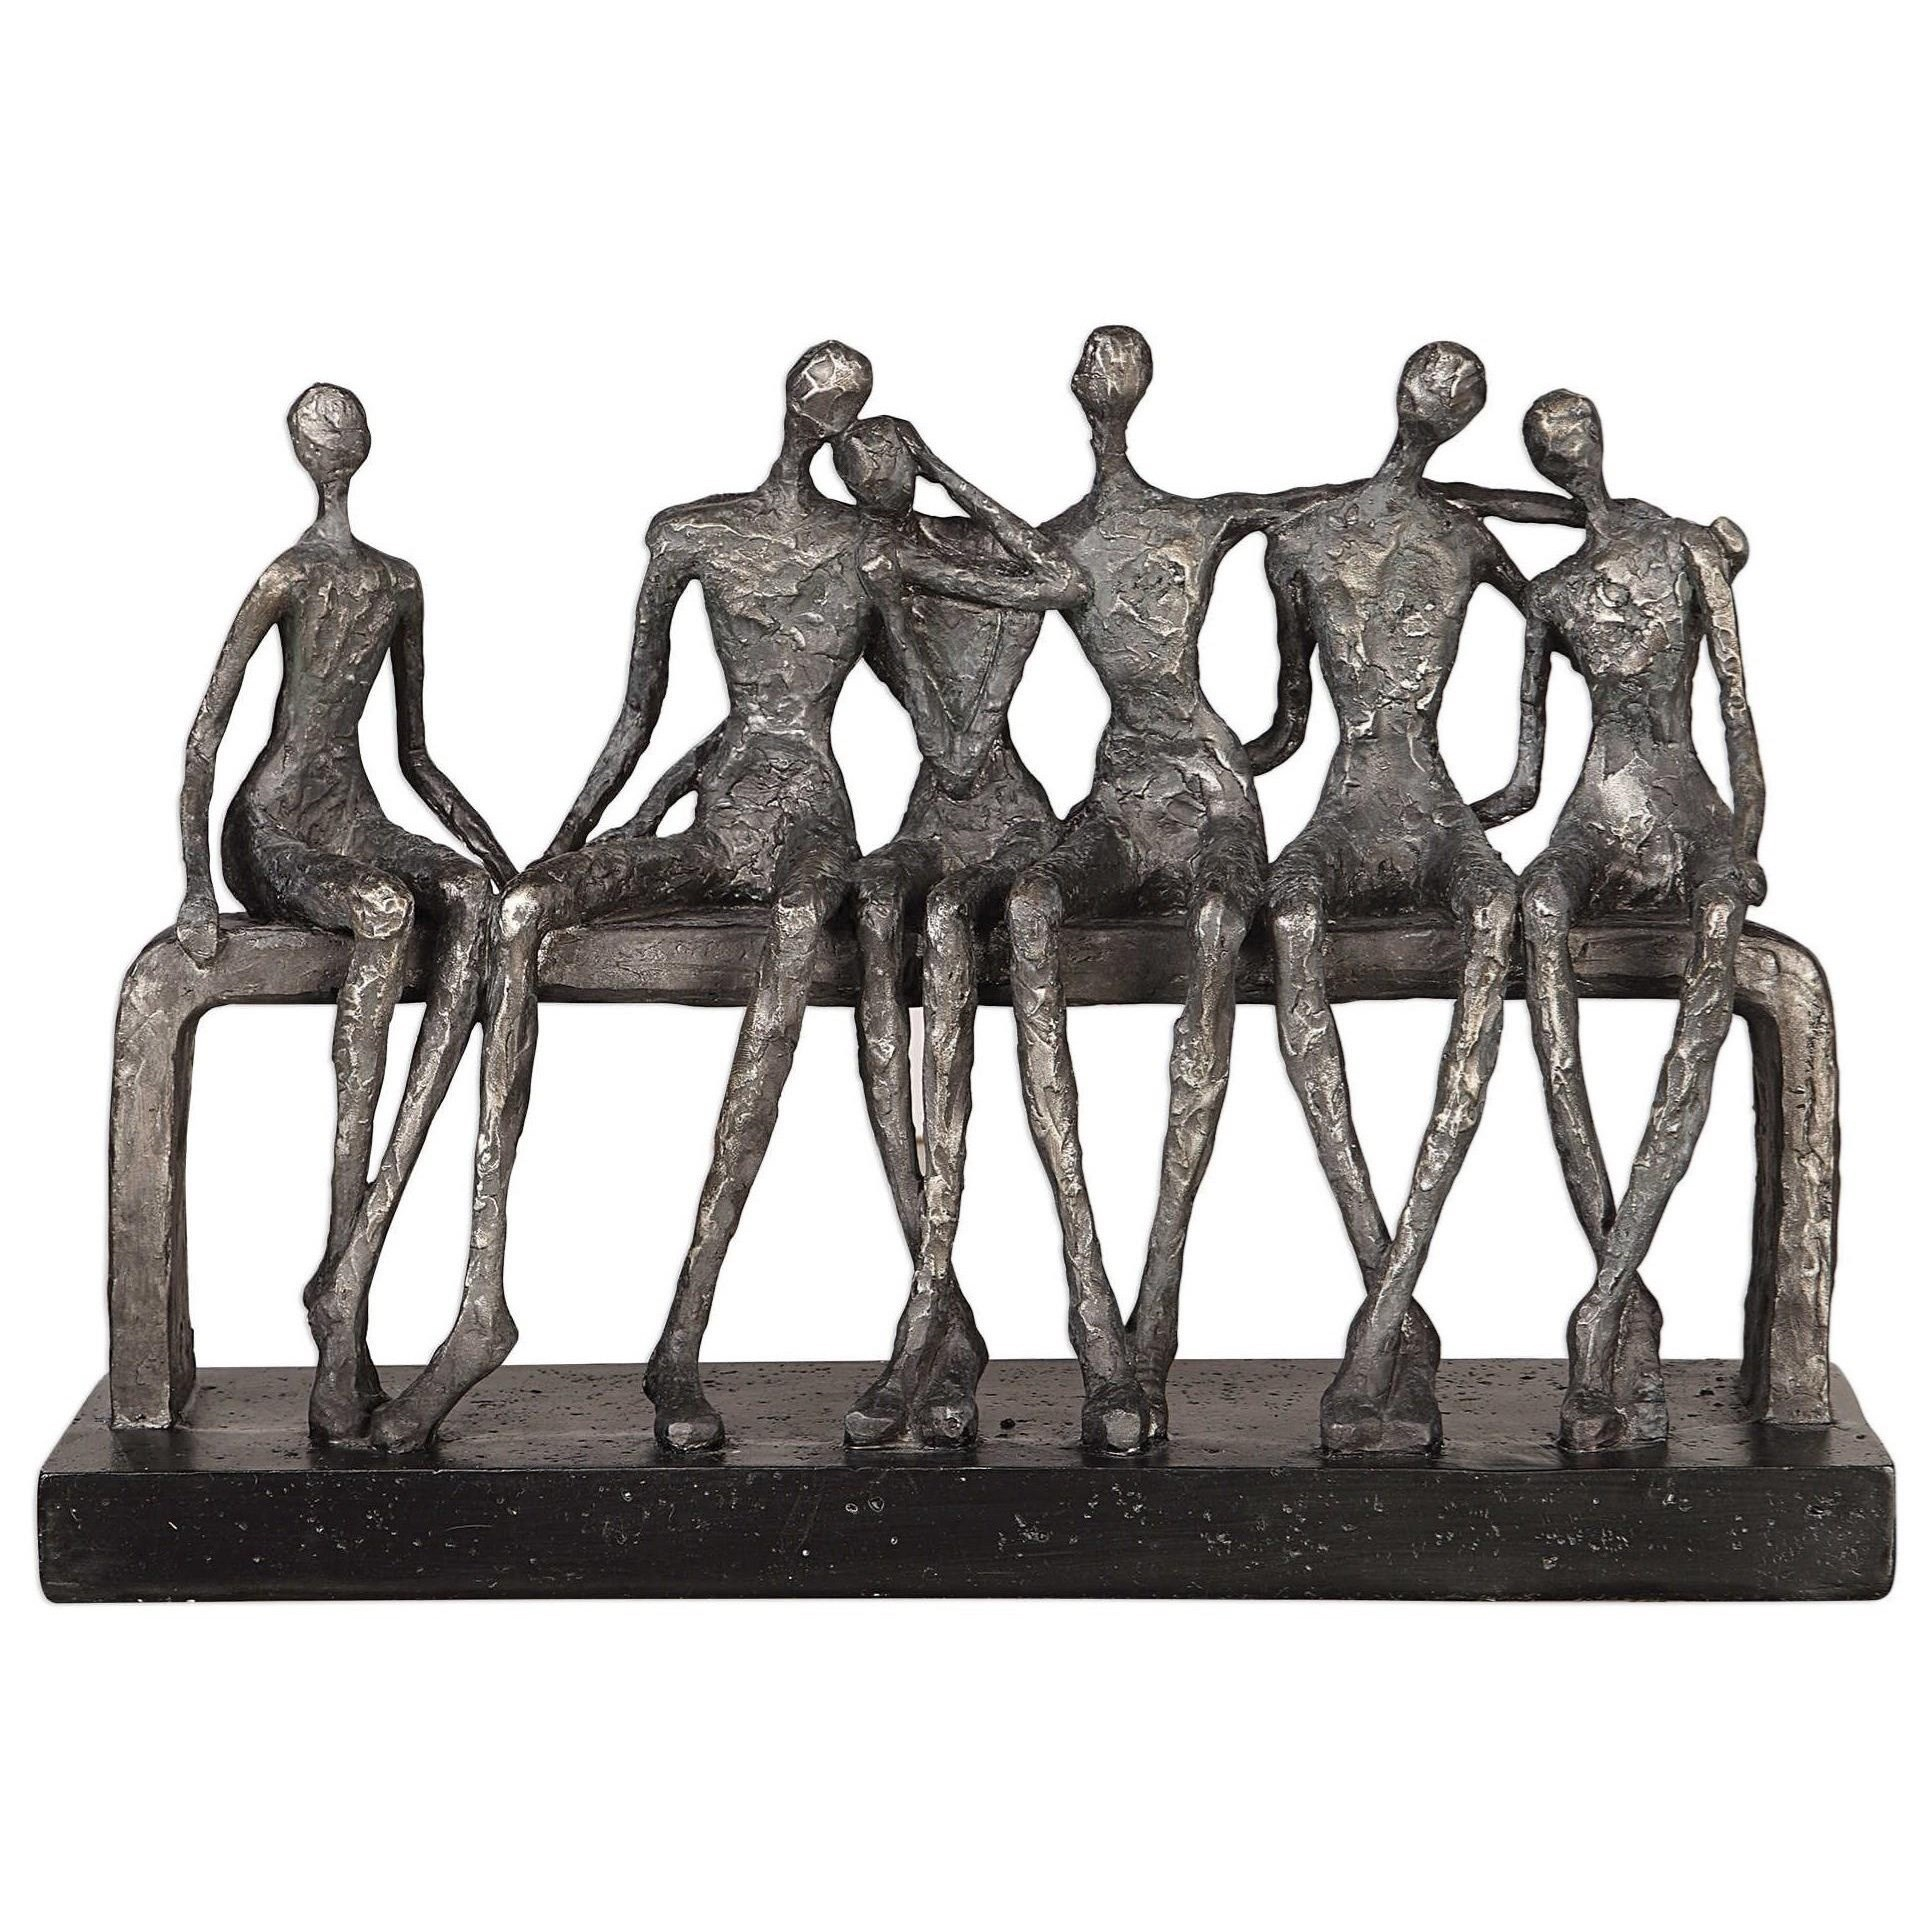 Accessories - Statues and Figurines Camaraderie Aged Silver Figurine by Uttermost at Furniture and ApplianceMart